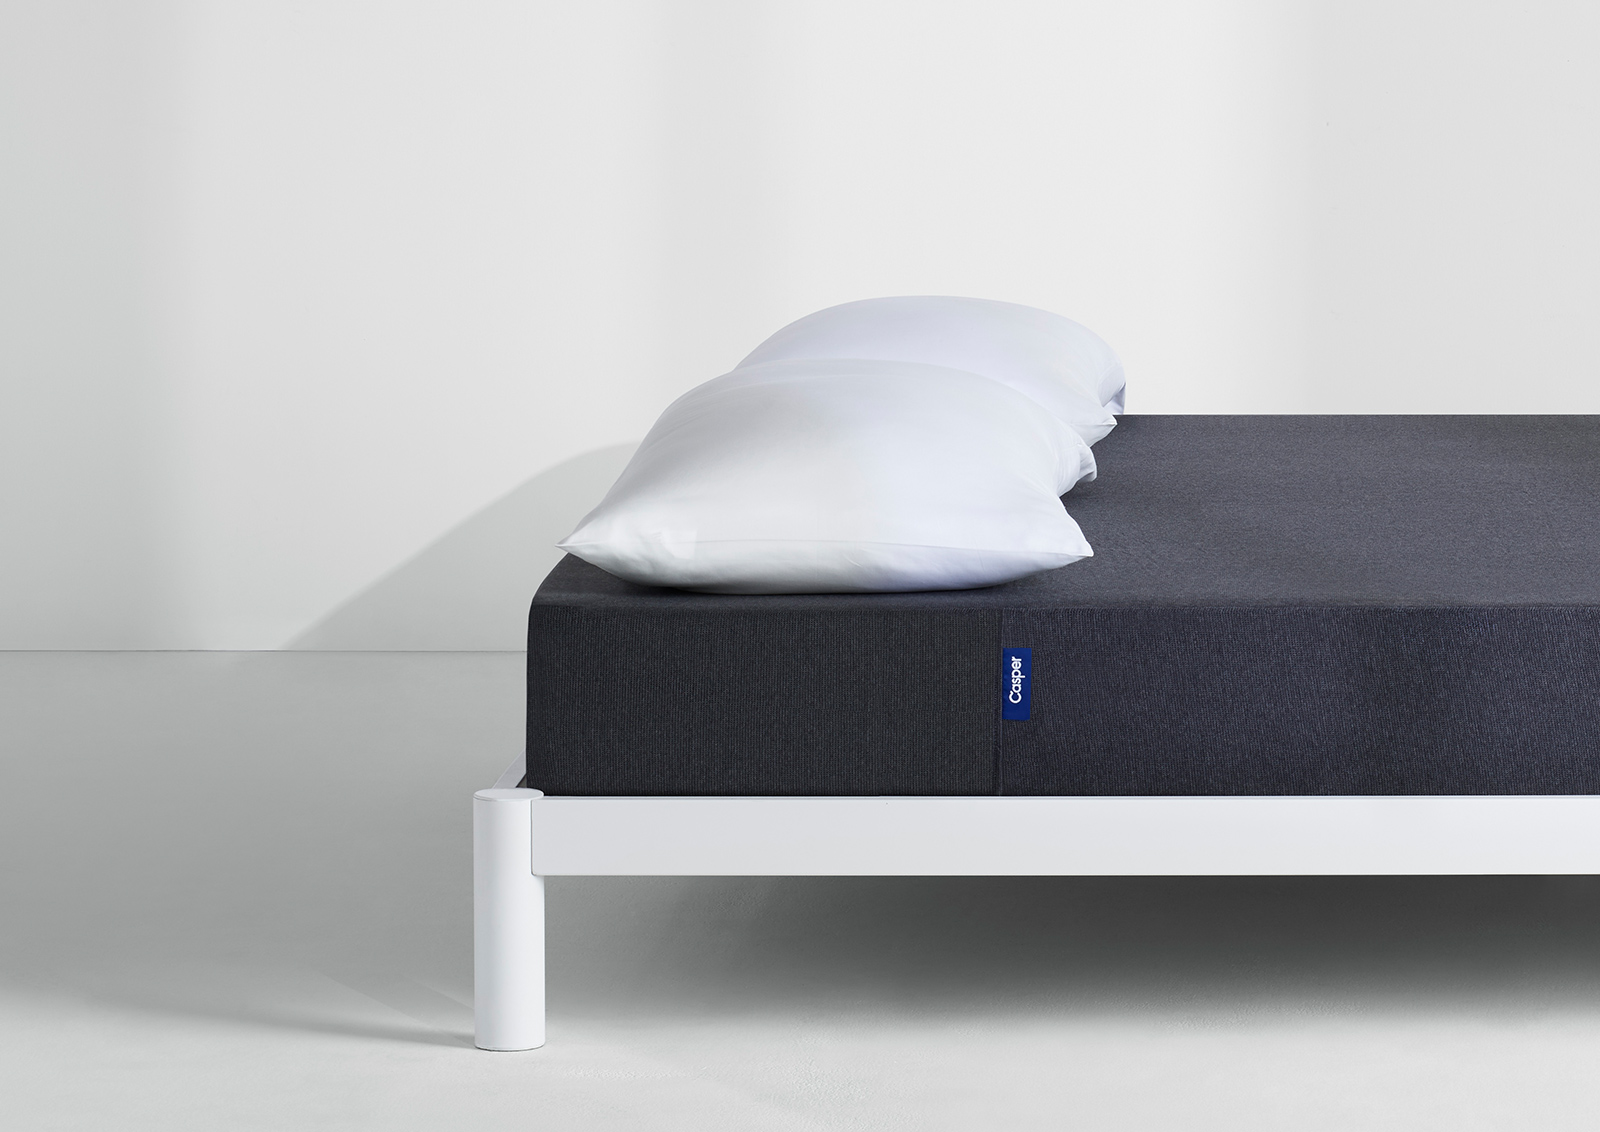 Shop the Casper Essential Online  Free Delivery   Returns   Casper     Casper Essential Mattress  Corner